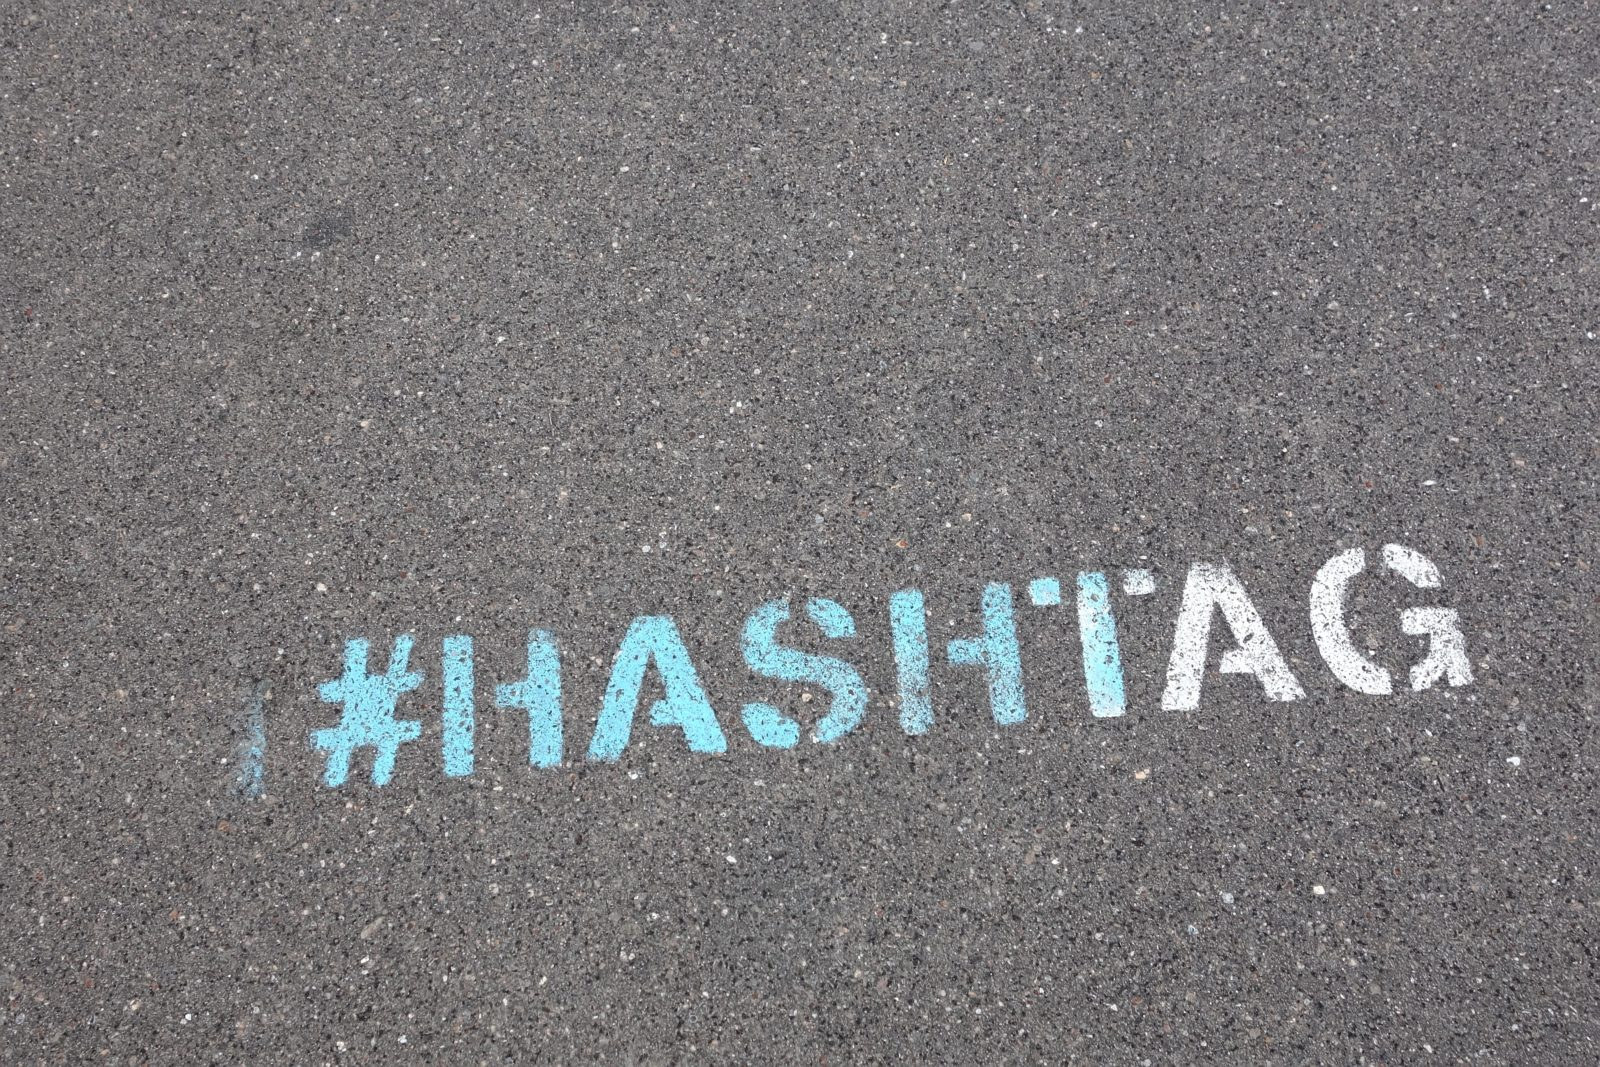 About Those #Hashtags